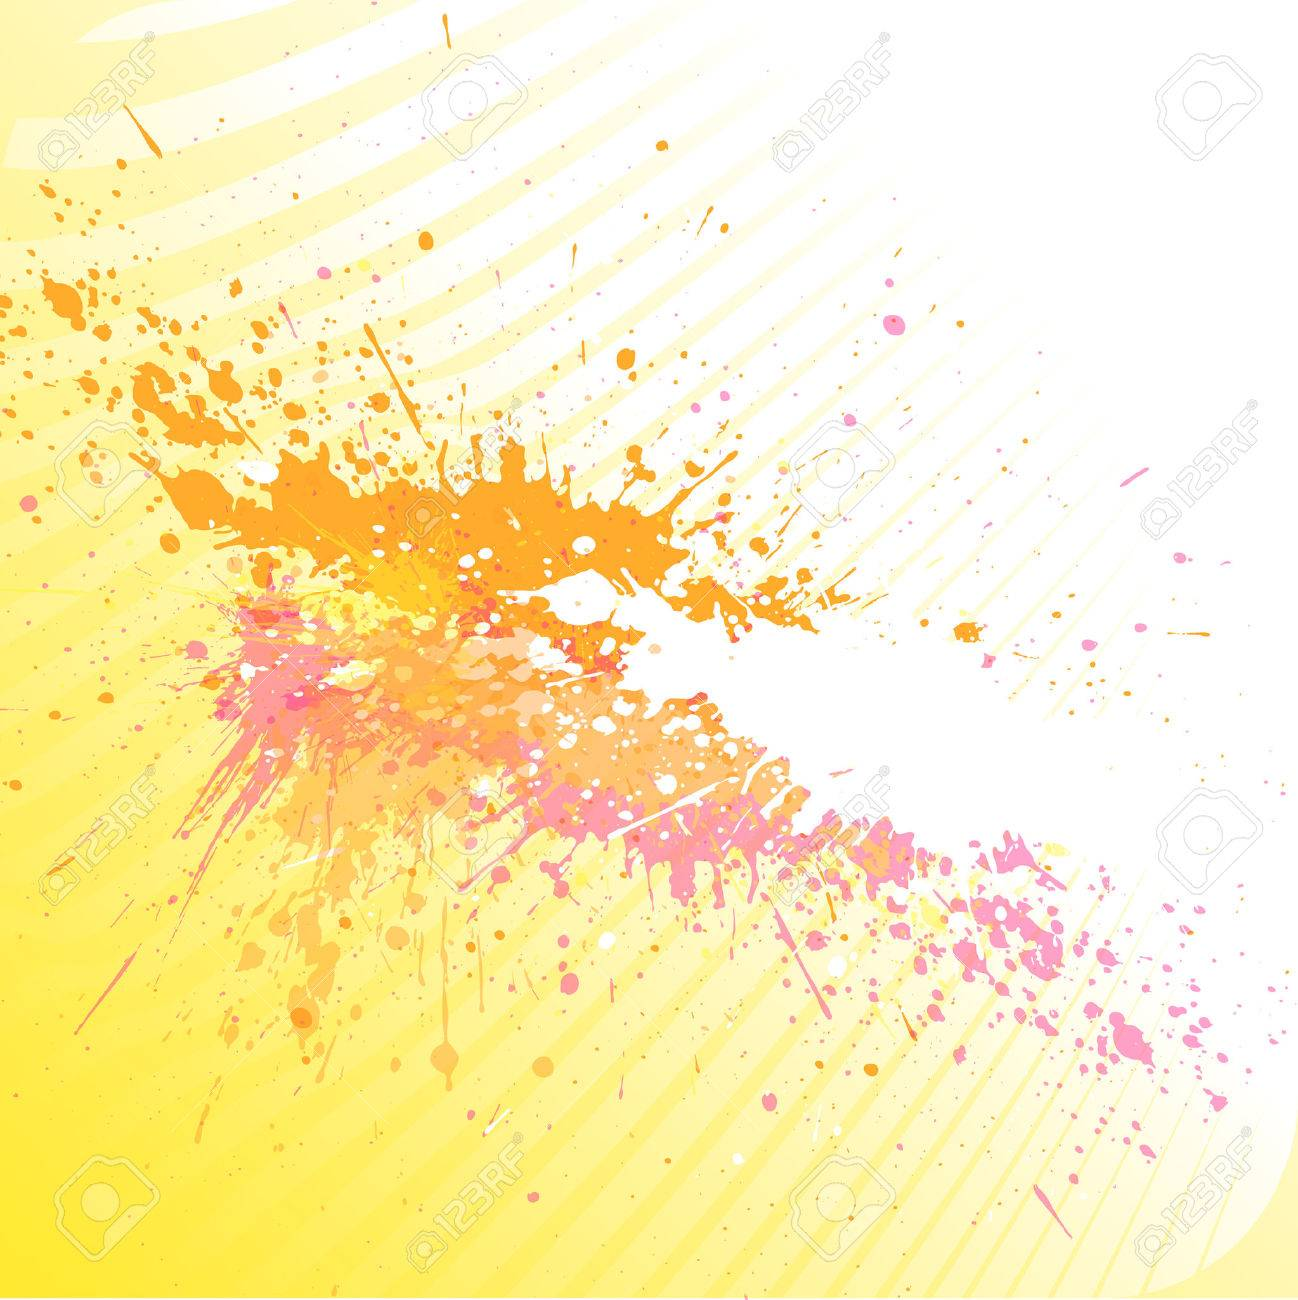 abstract grunge background, vector EPS 10 - 8635968